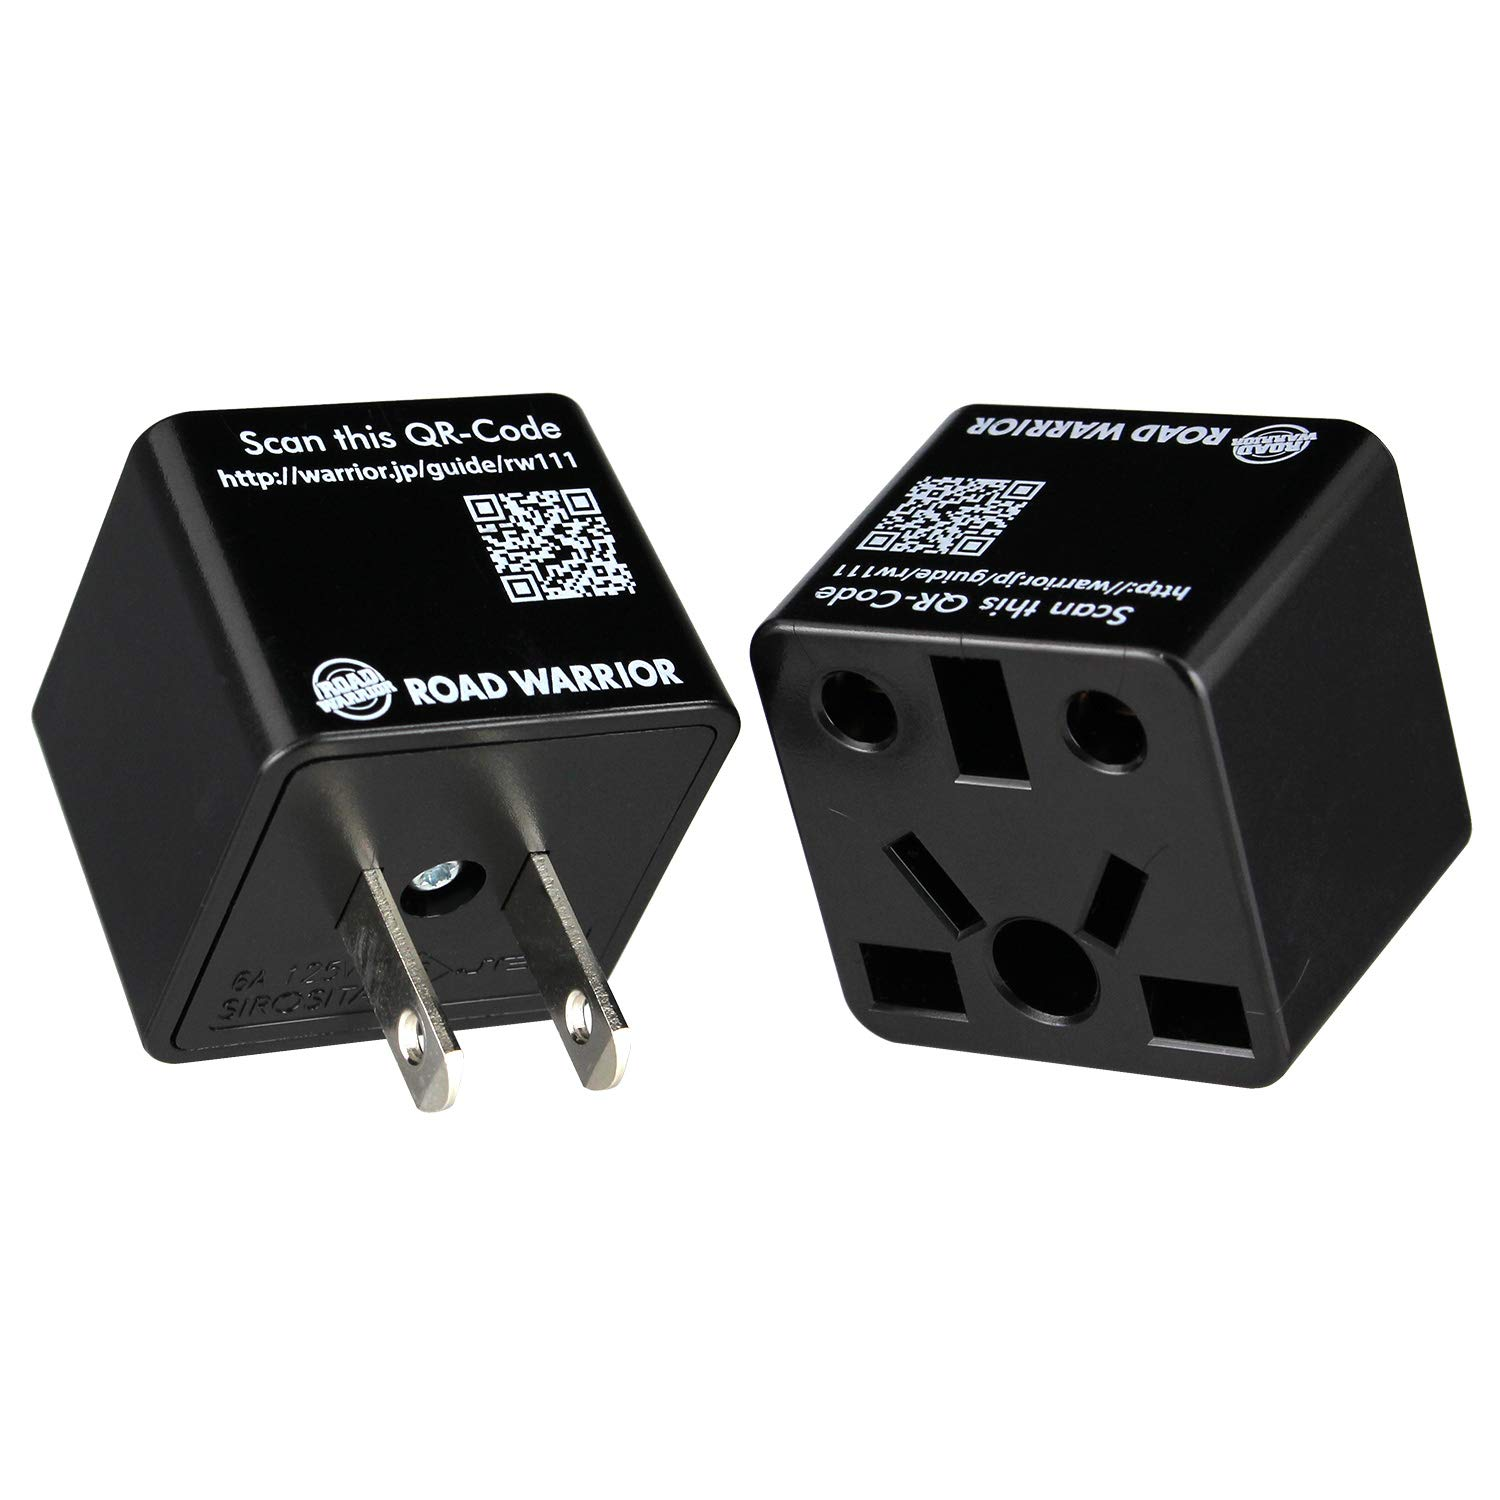 [2 Pack] ROAD WARRIOR US Travel Plug Adapter EU/UK/CN/AU/IN to USA (Type A) - RW111BK-US